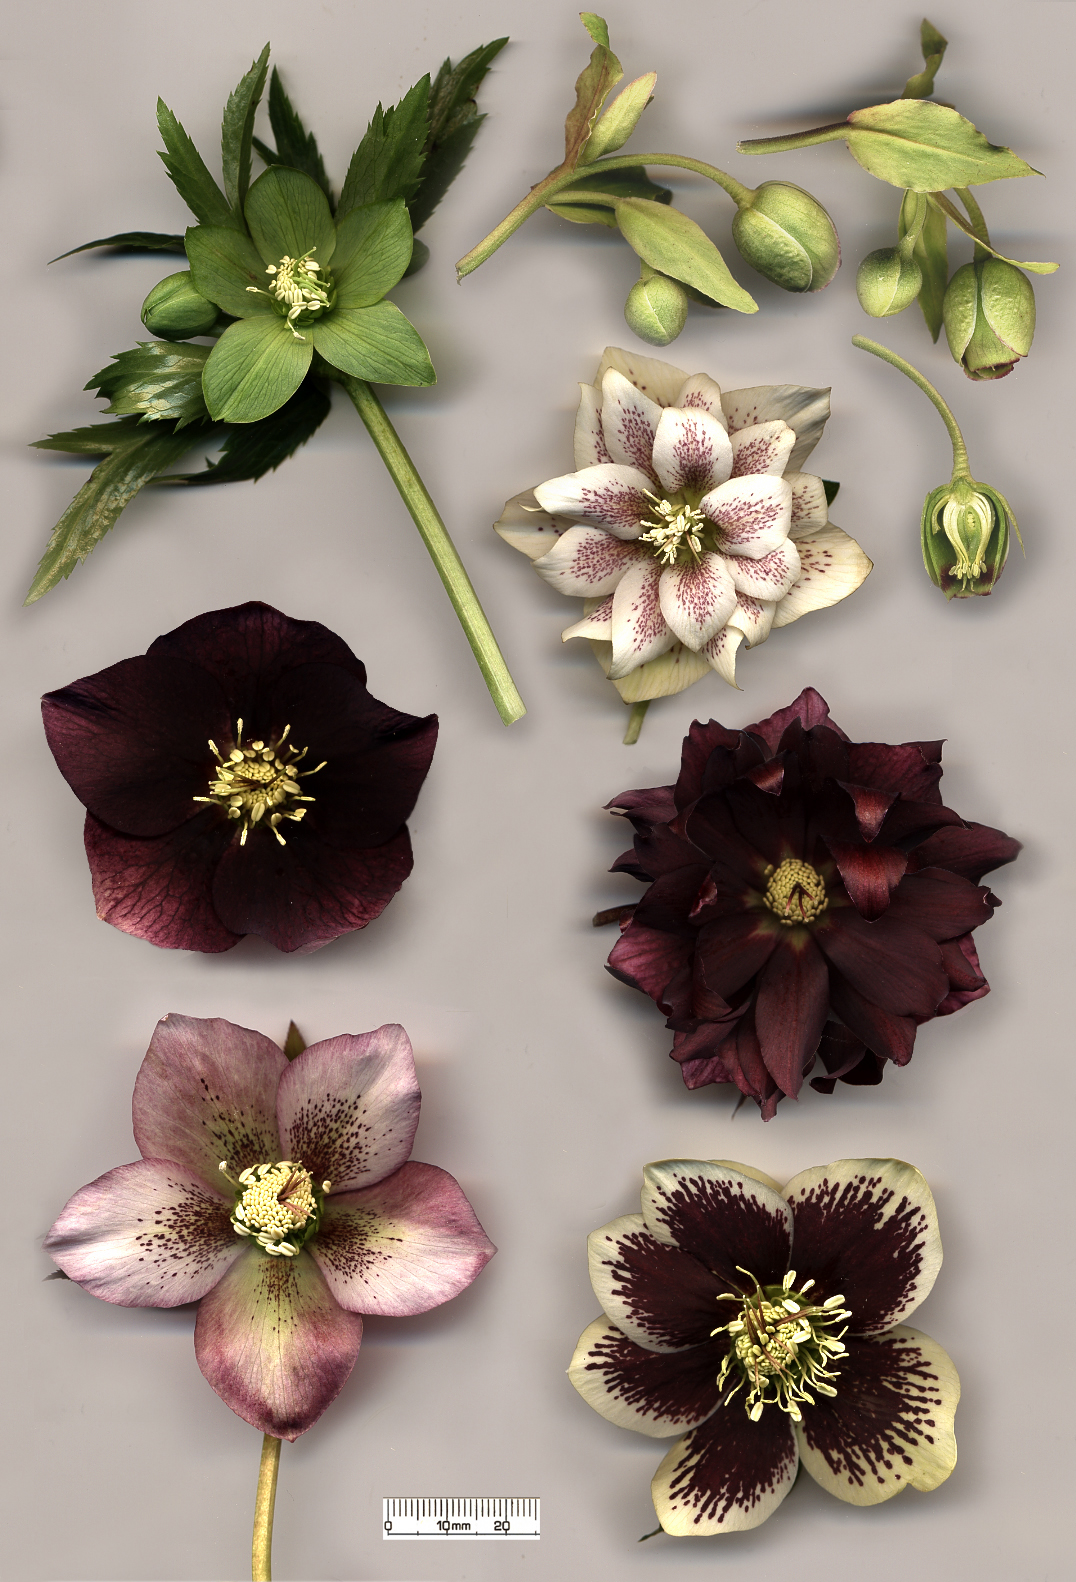 Hellebore florets - Green flowers for St. Patrick's Day